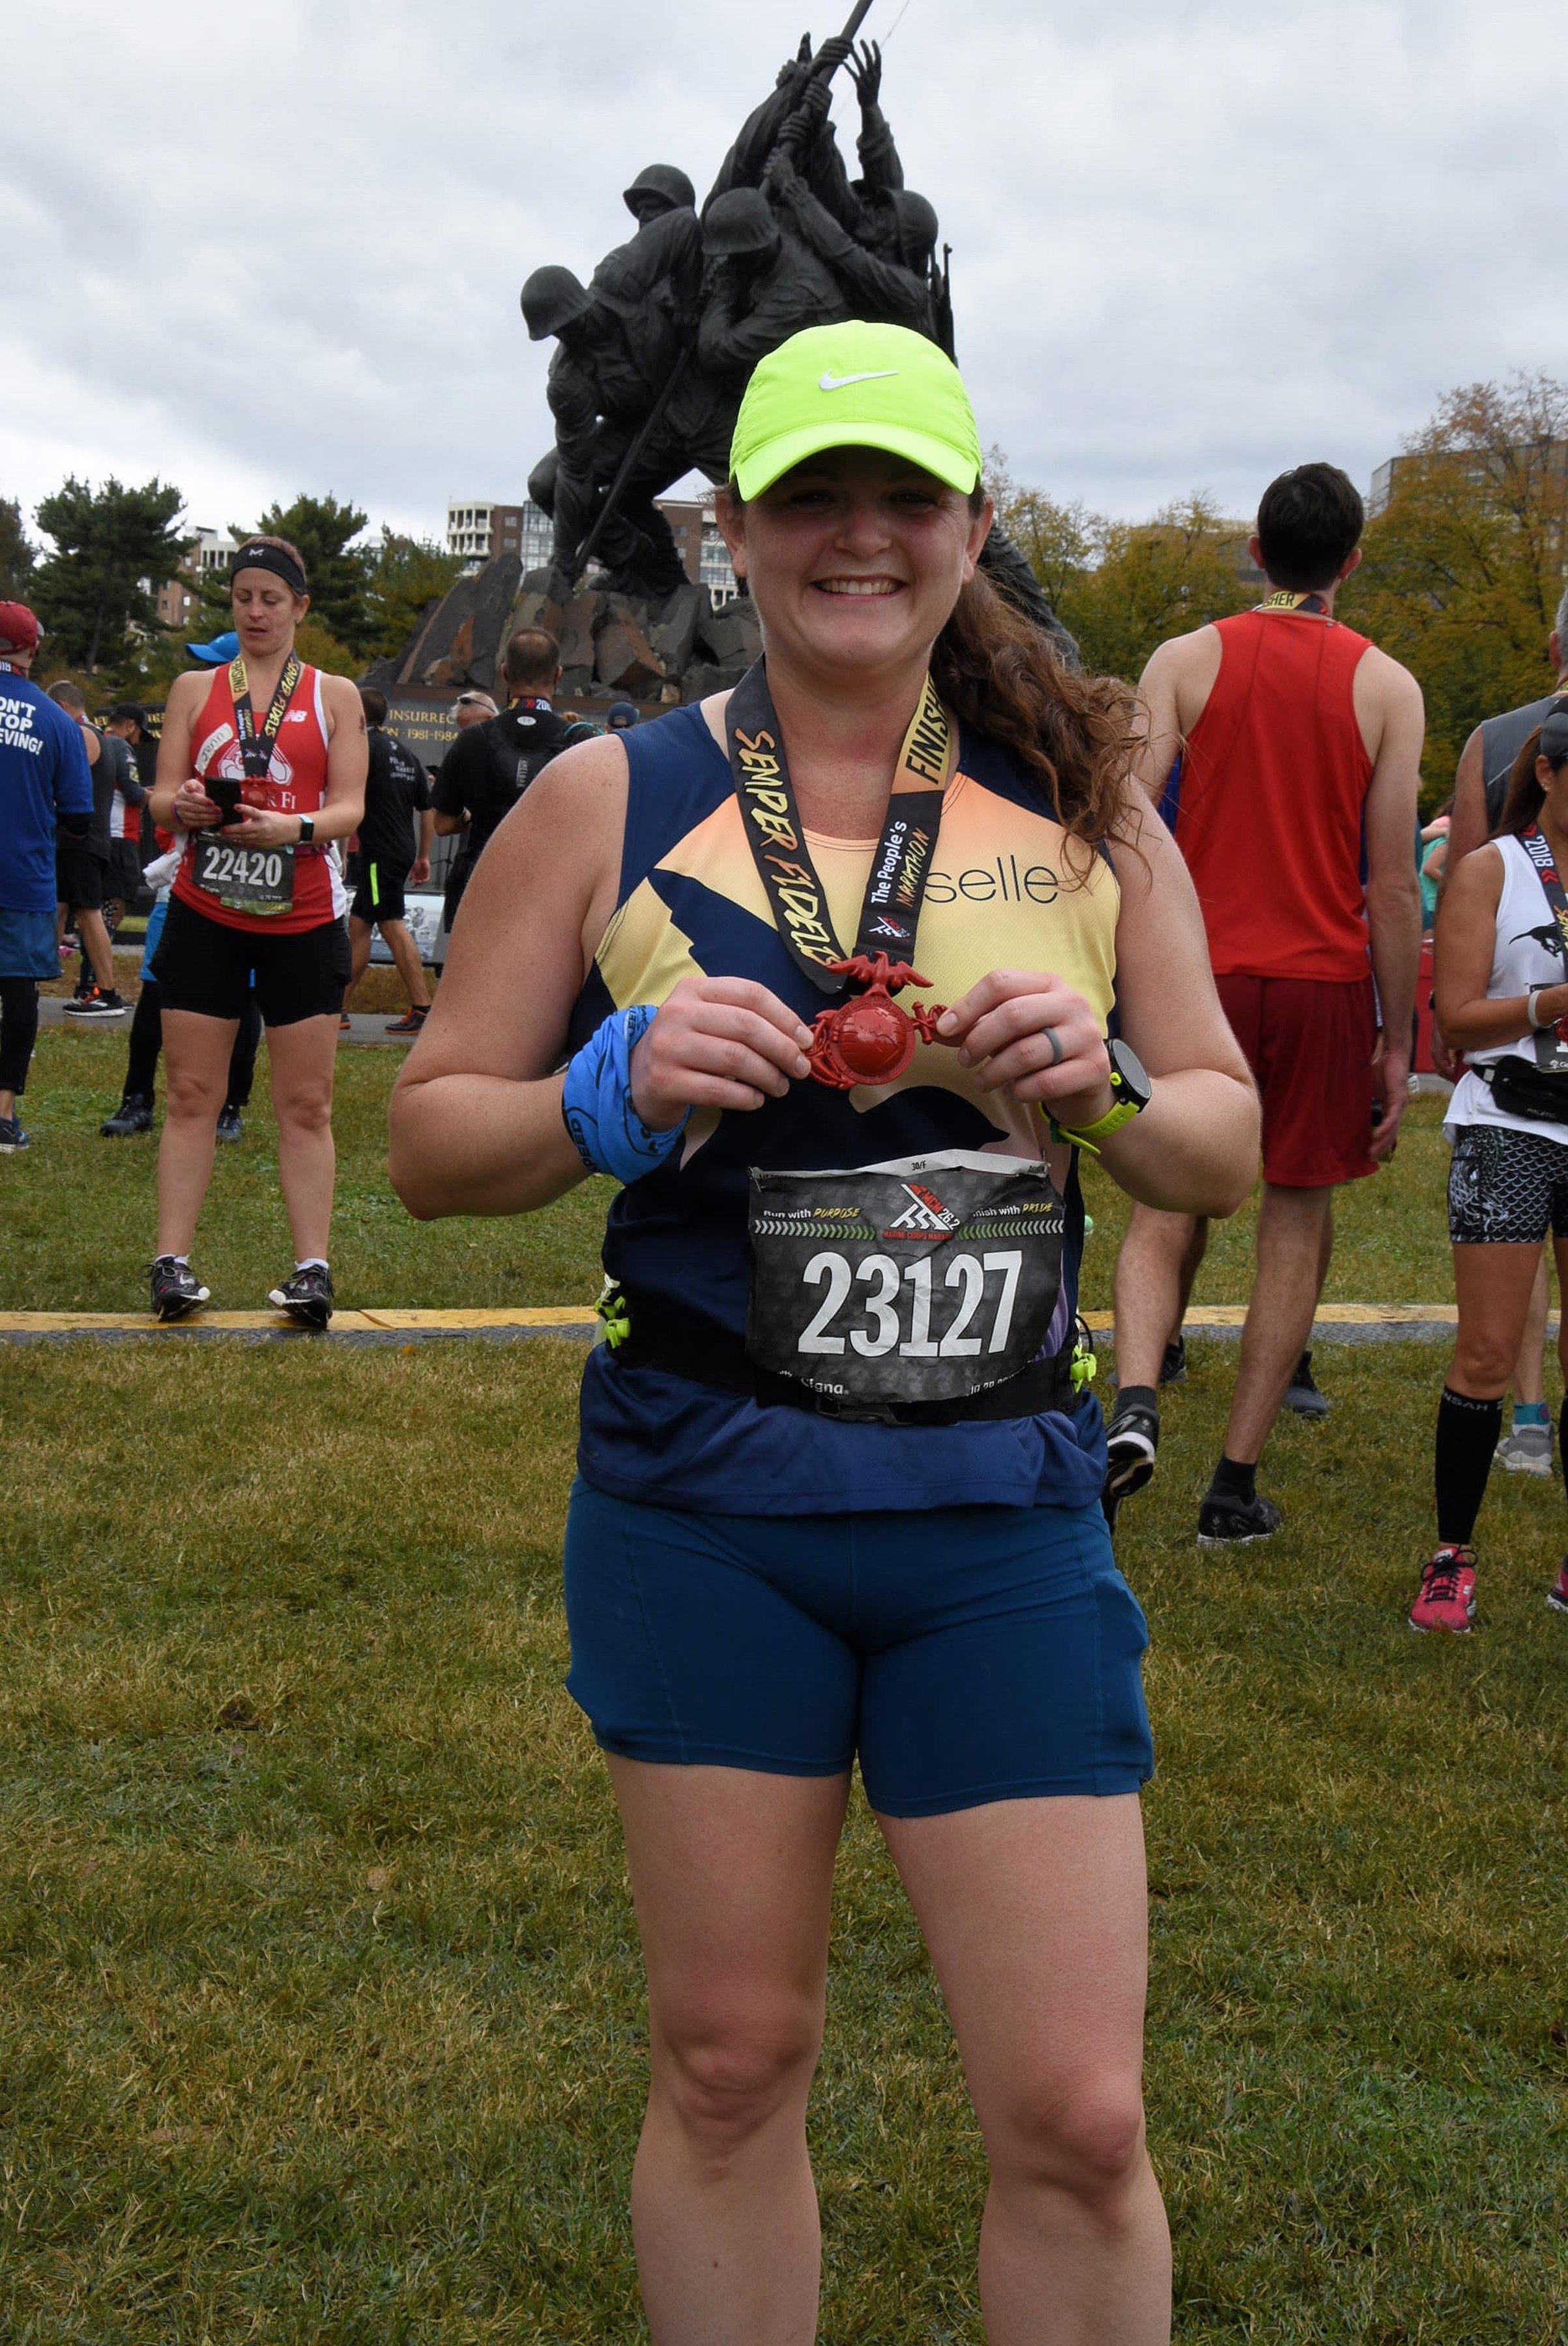 Finisher photo at MCM. (photo purchased for use from Marathon Foto).